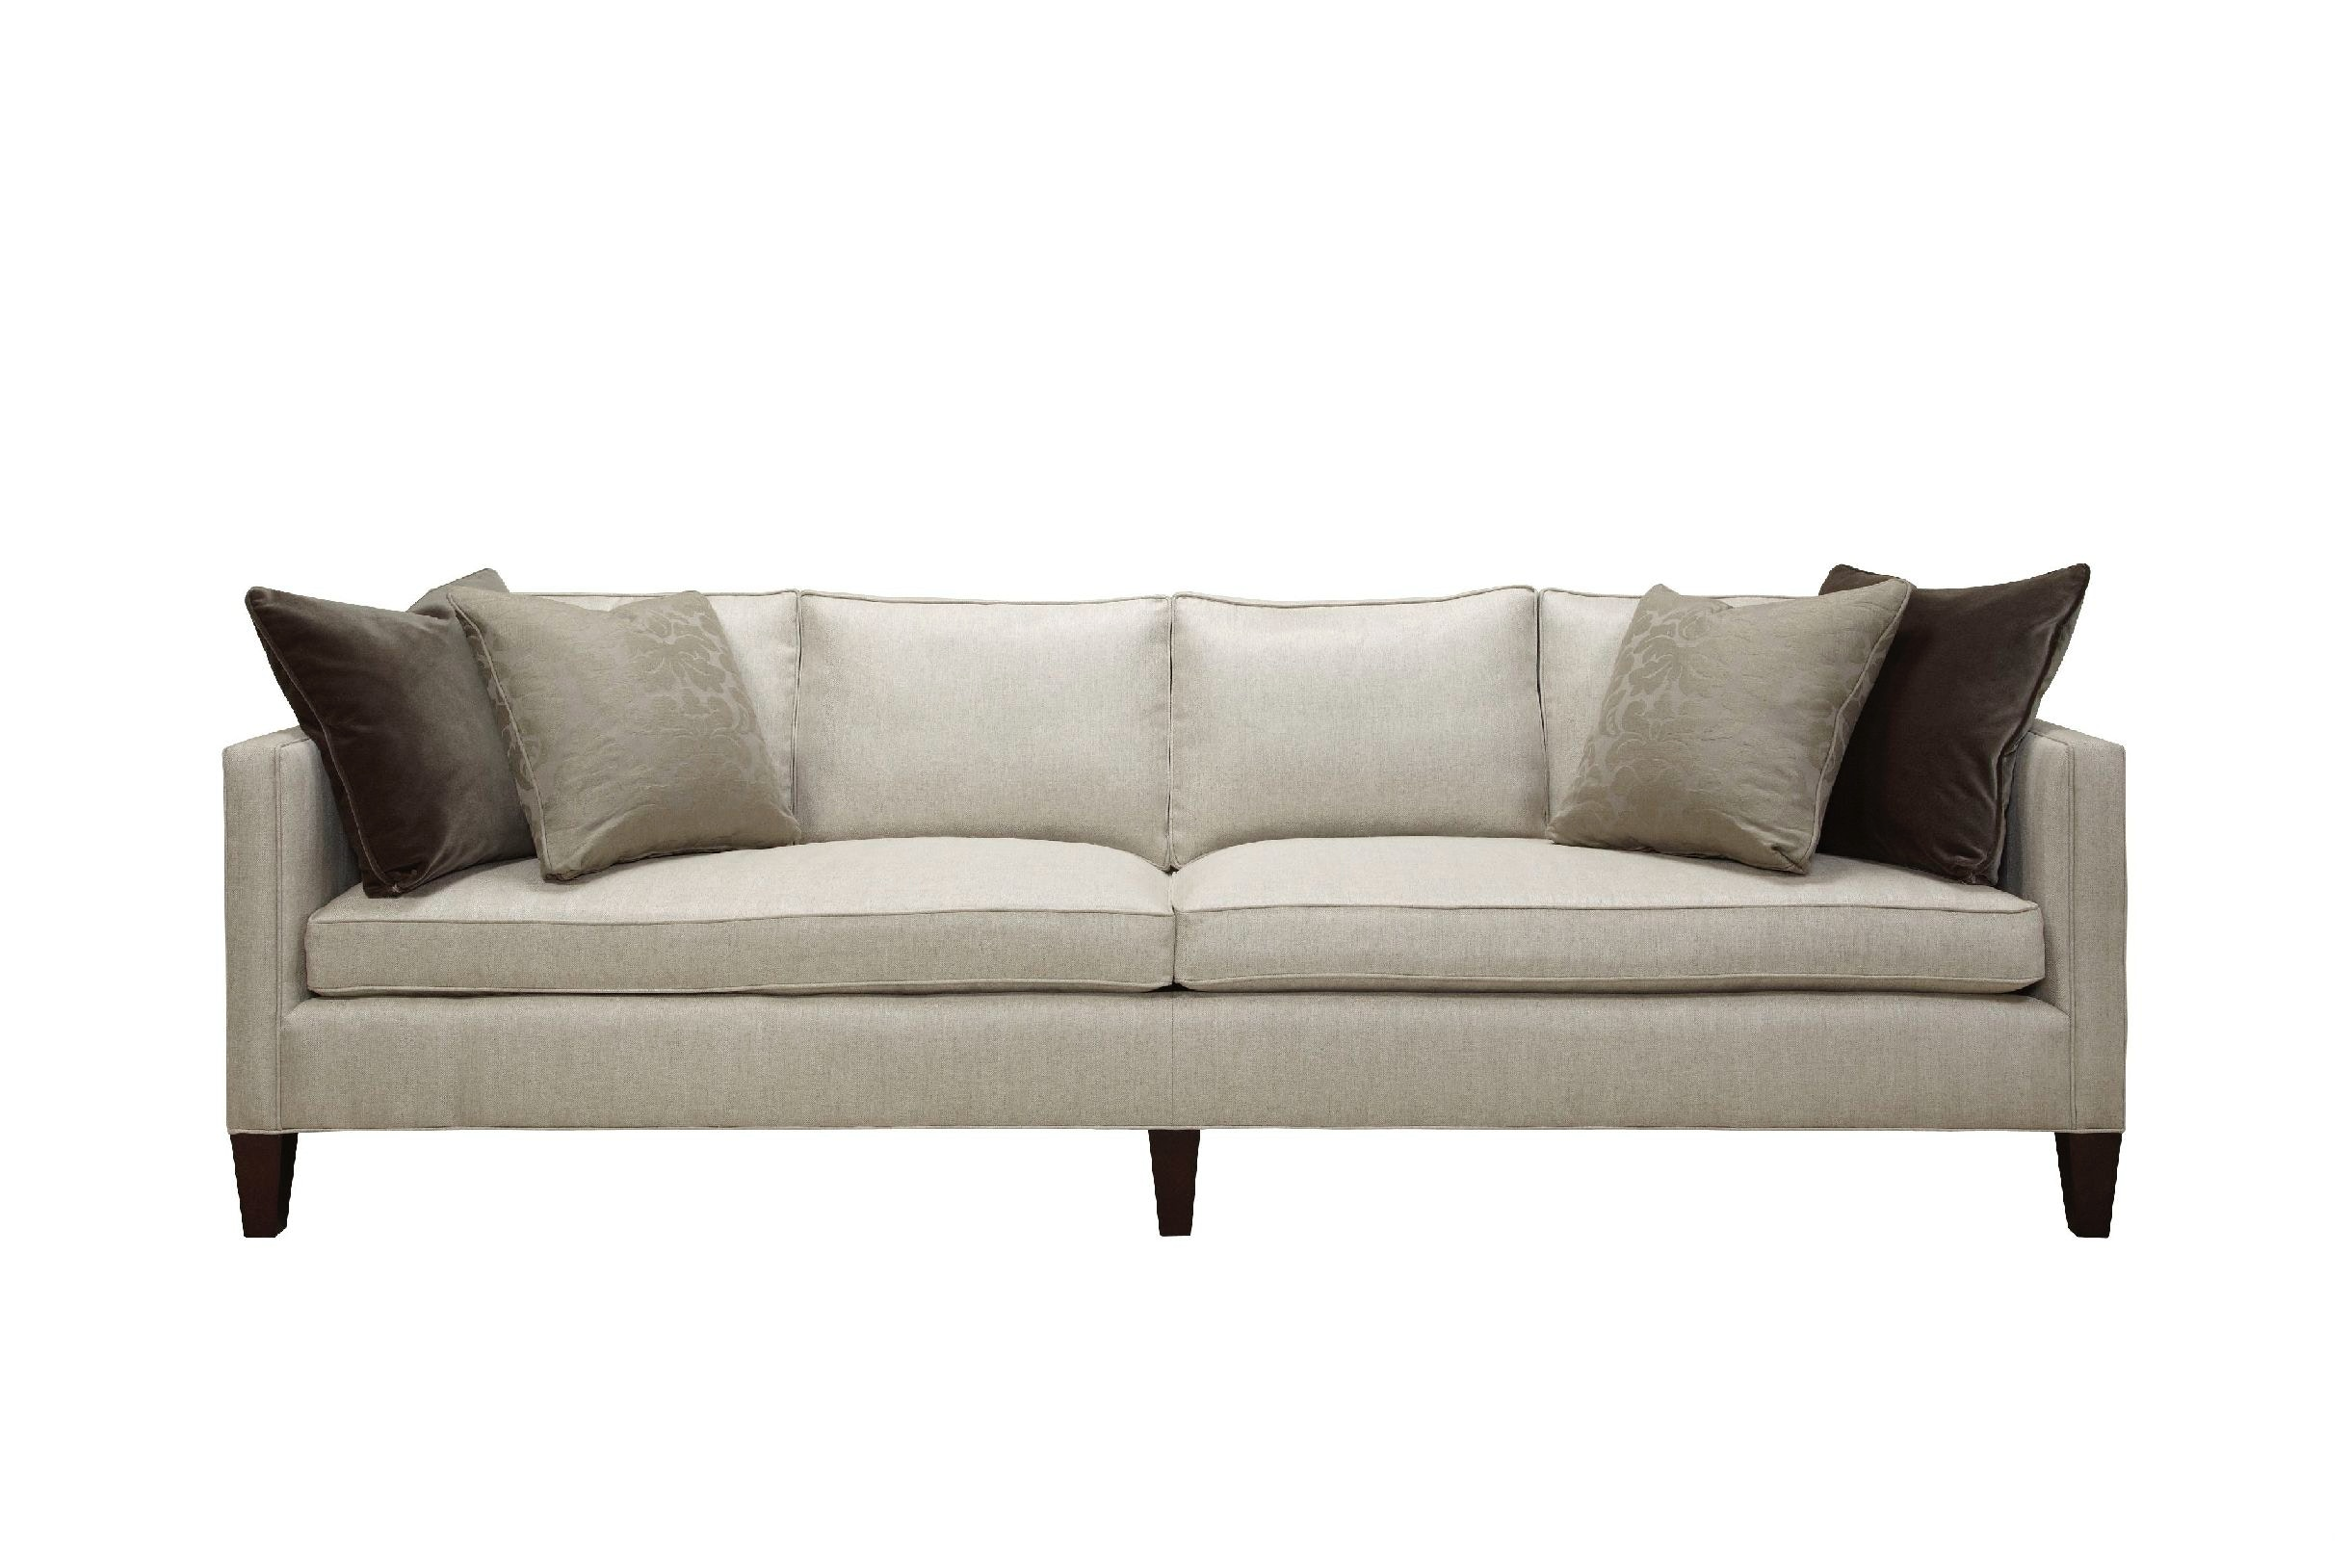 Bon Wes 1 Harrison Sofa WES22051 From Walter E. Smithe Furniture + Design